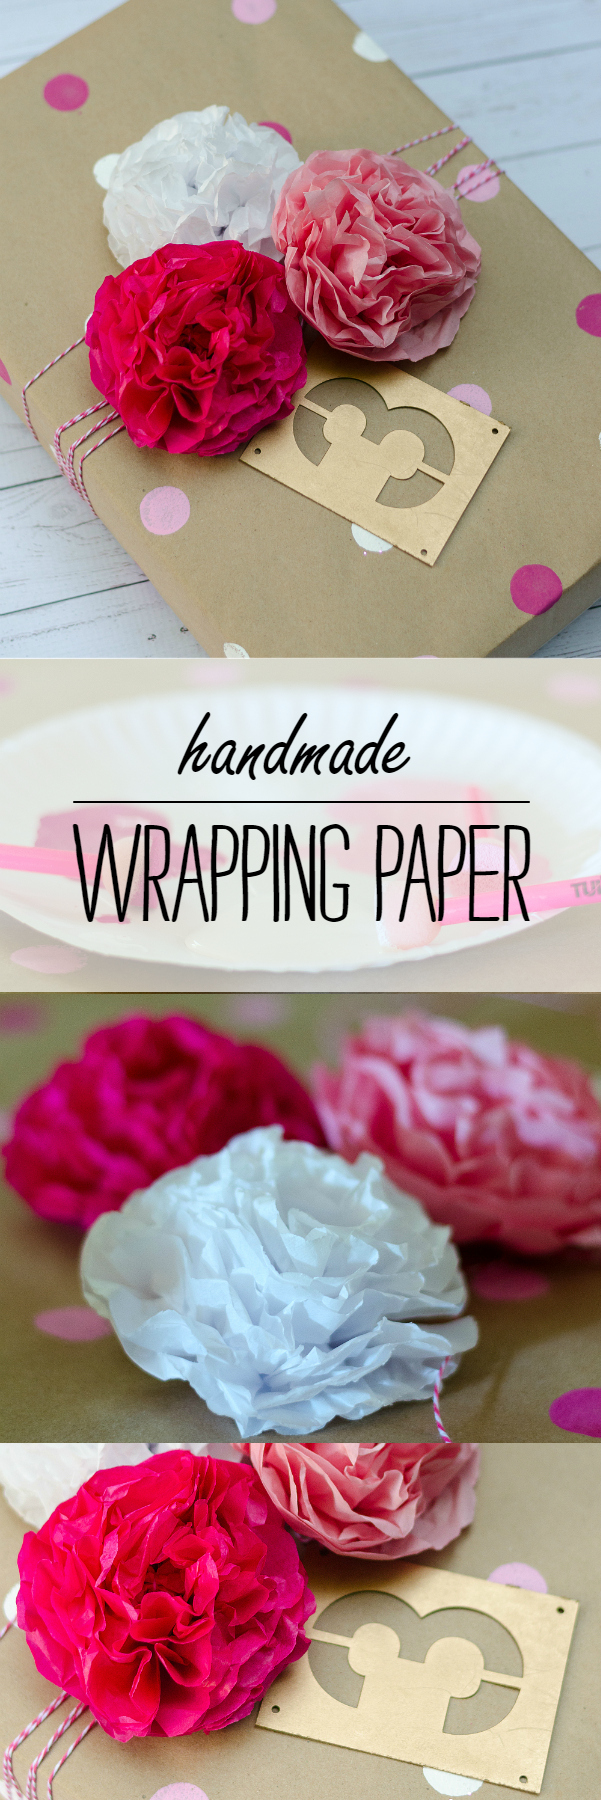 Make Your Own Wrapping Paper with Paint and Brown Paper